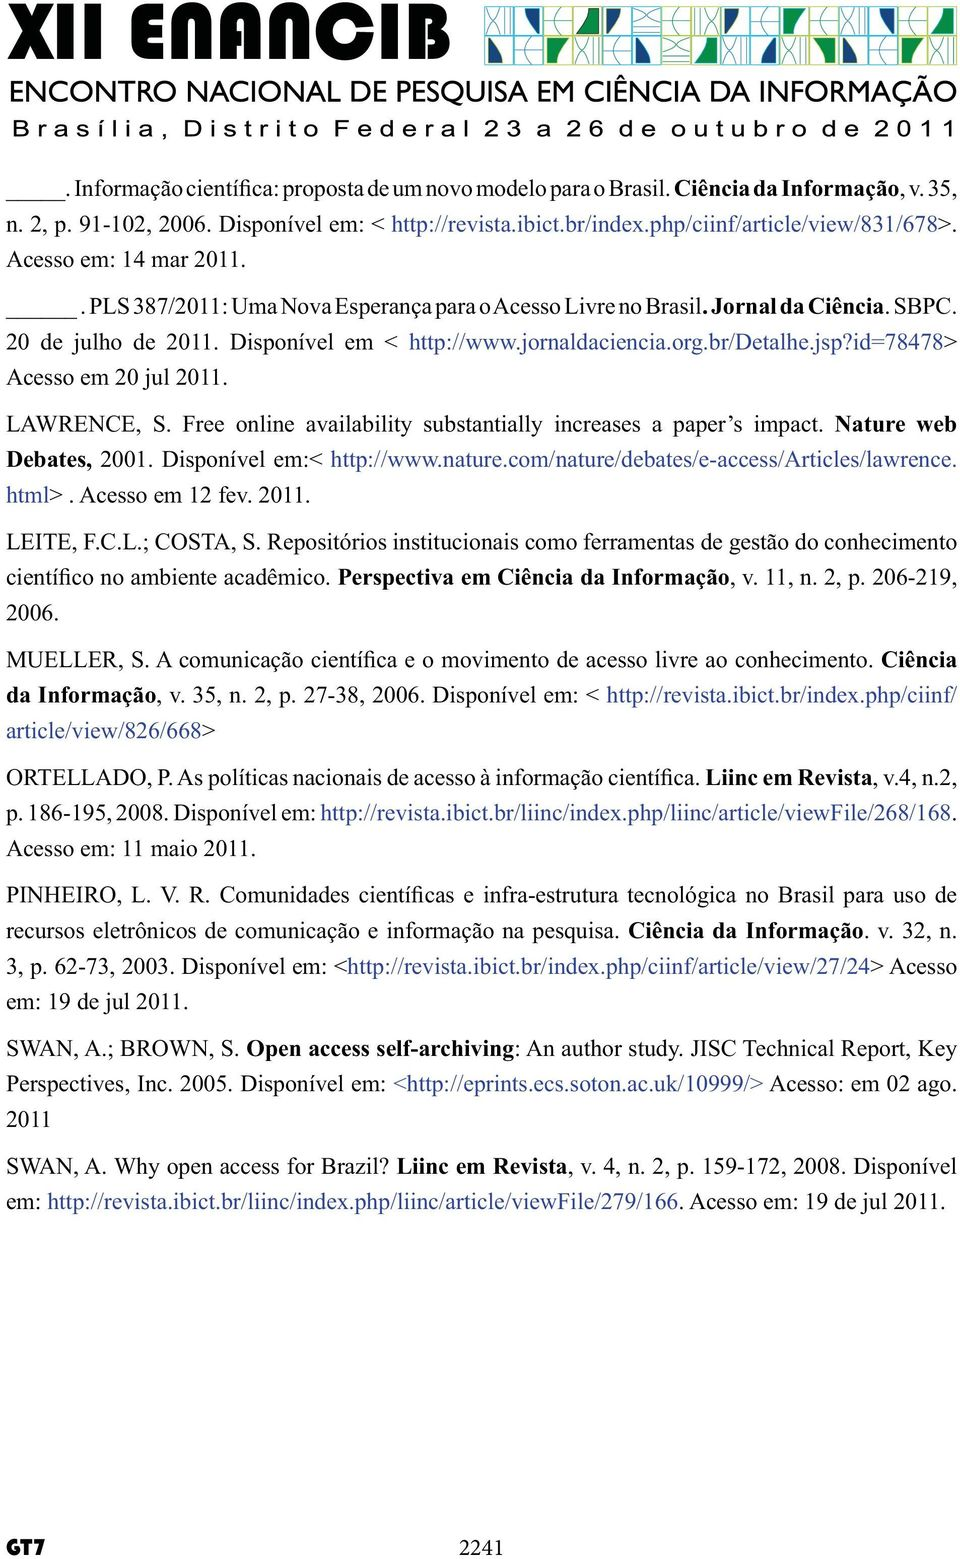 id=78478> Acesso em 20 jul 2011. LAWRENCE, S. Free online availability substantially increases a paper s impact. Nature web Debates, 2001. Disponível em:< http://www.nature.